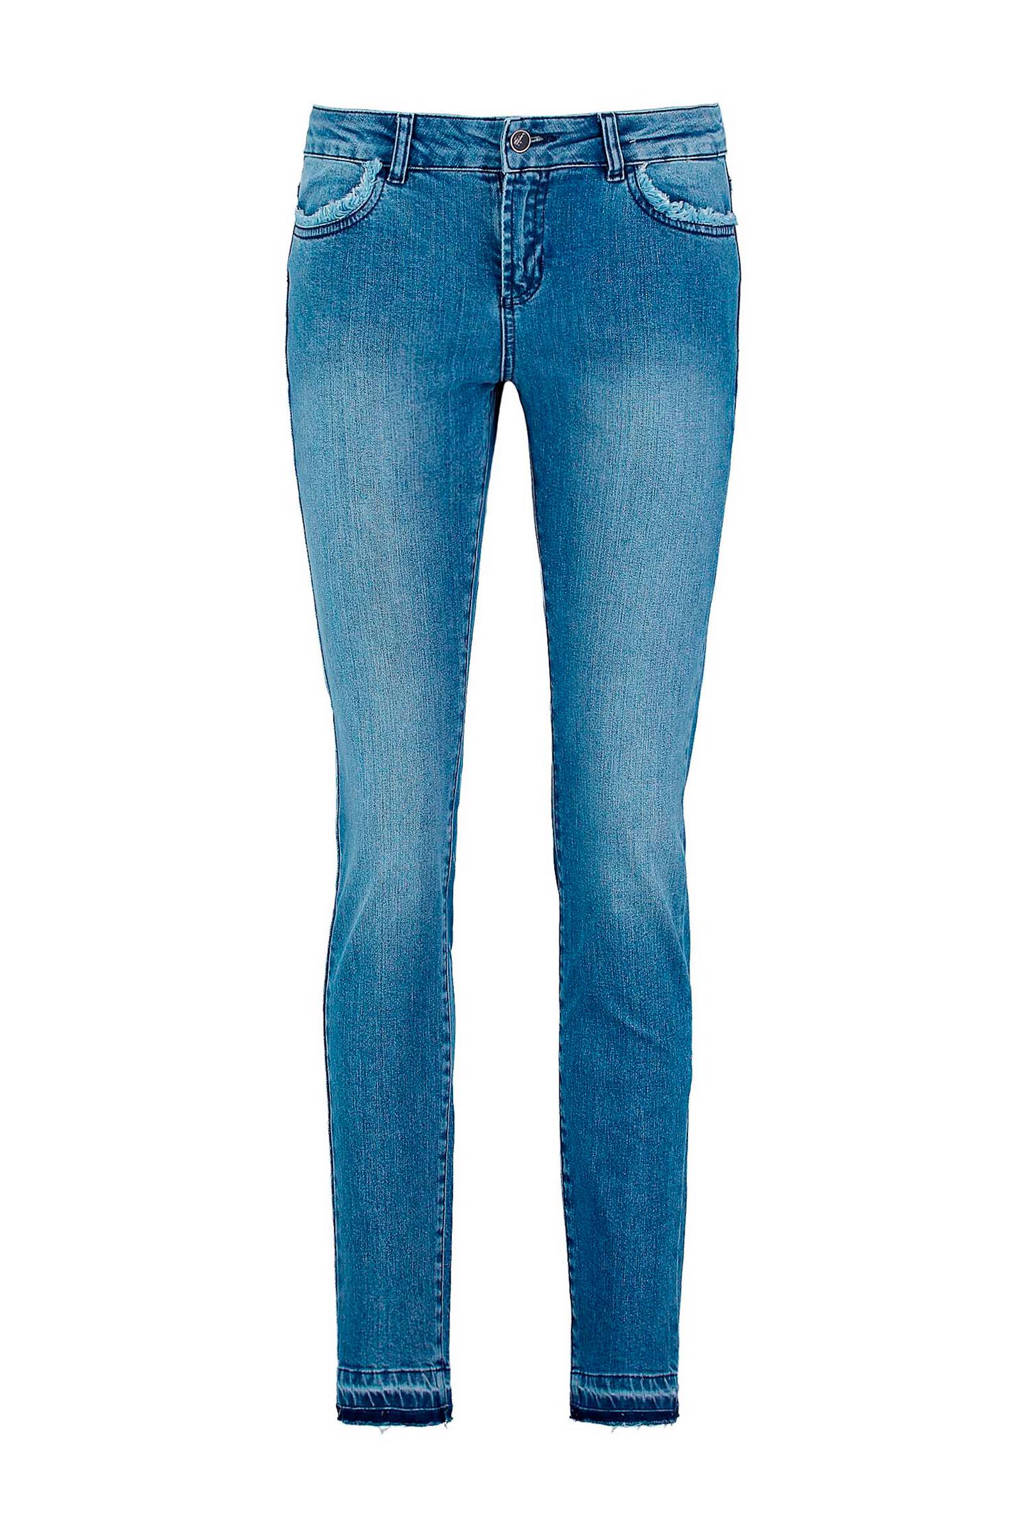 Claudia Sträter cropped skinny jeans, Stonewashed